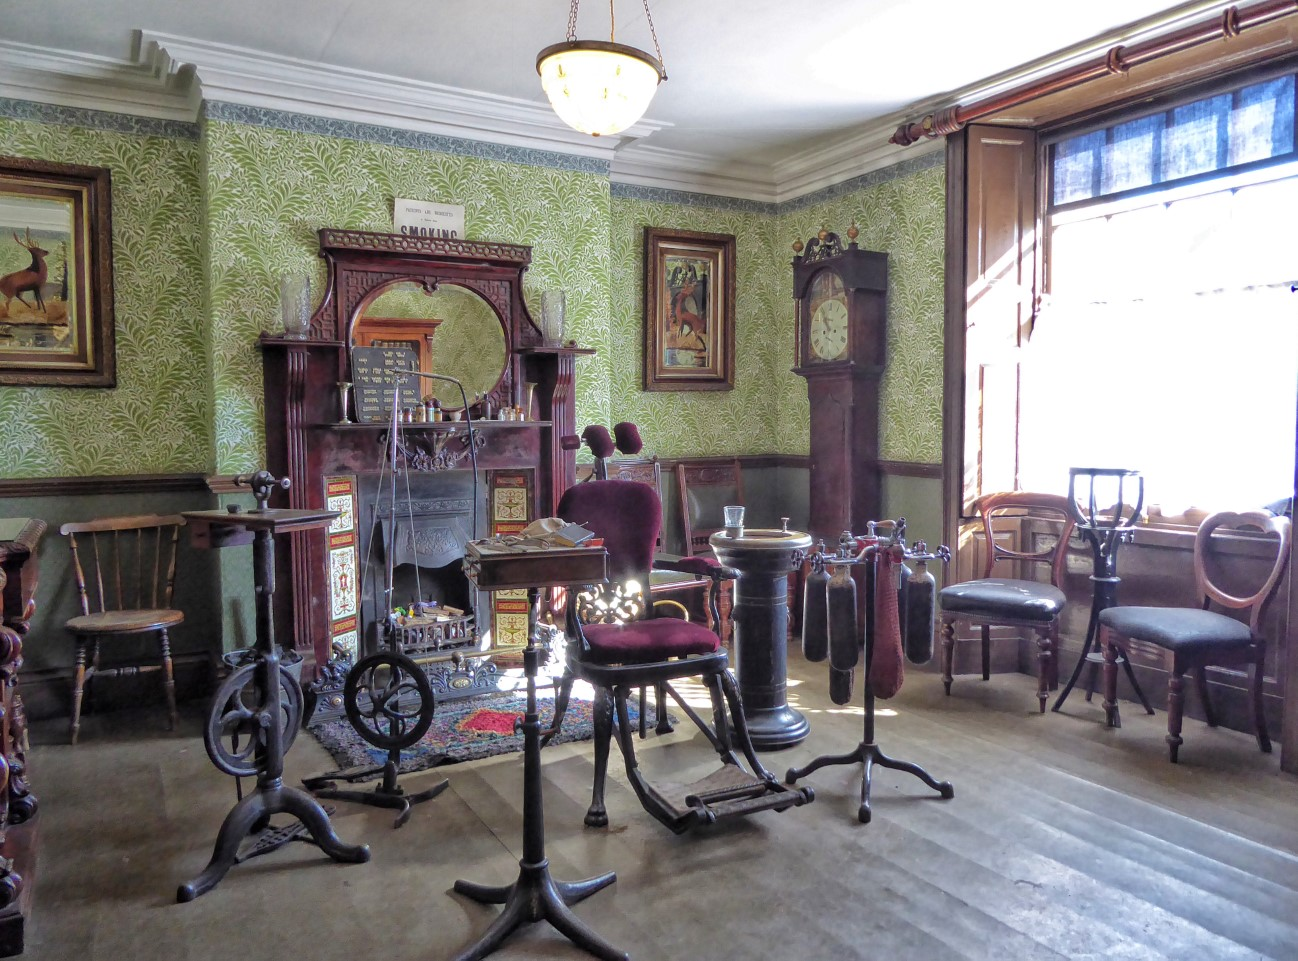 Old-fashioned room with dentist's chair and equipment